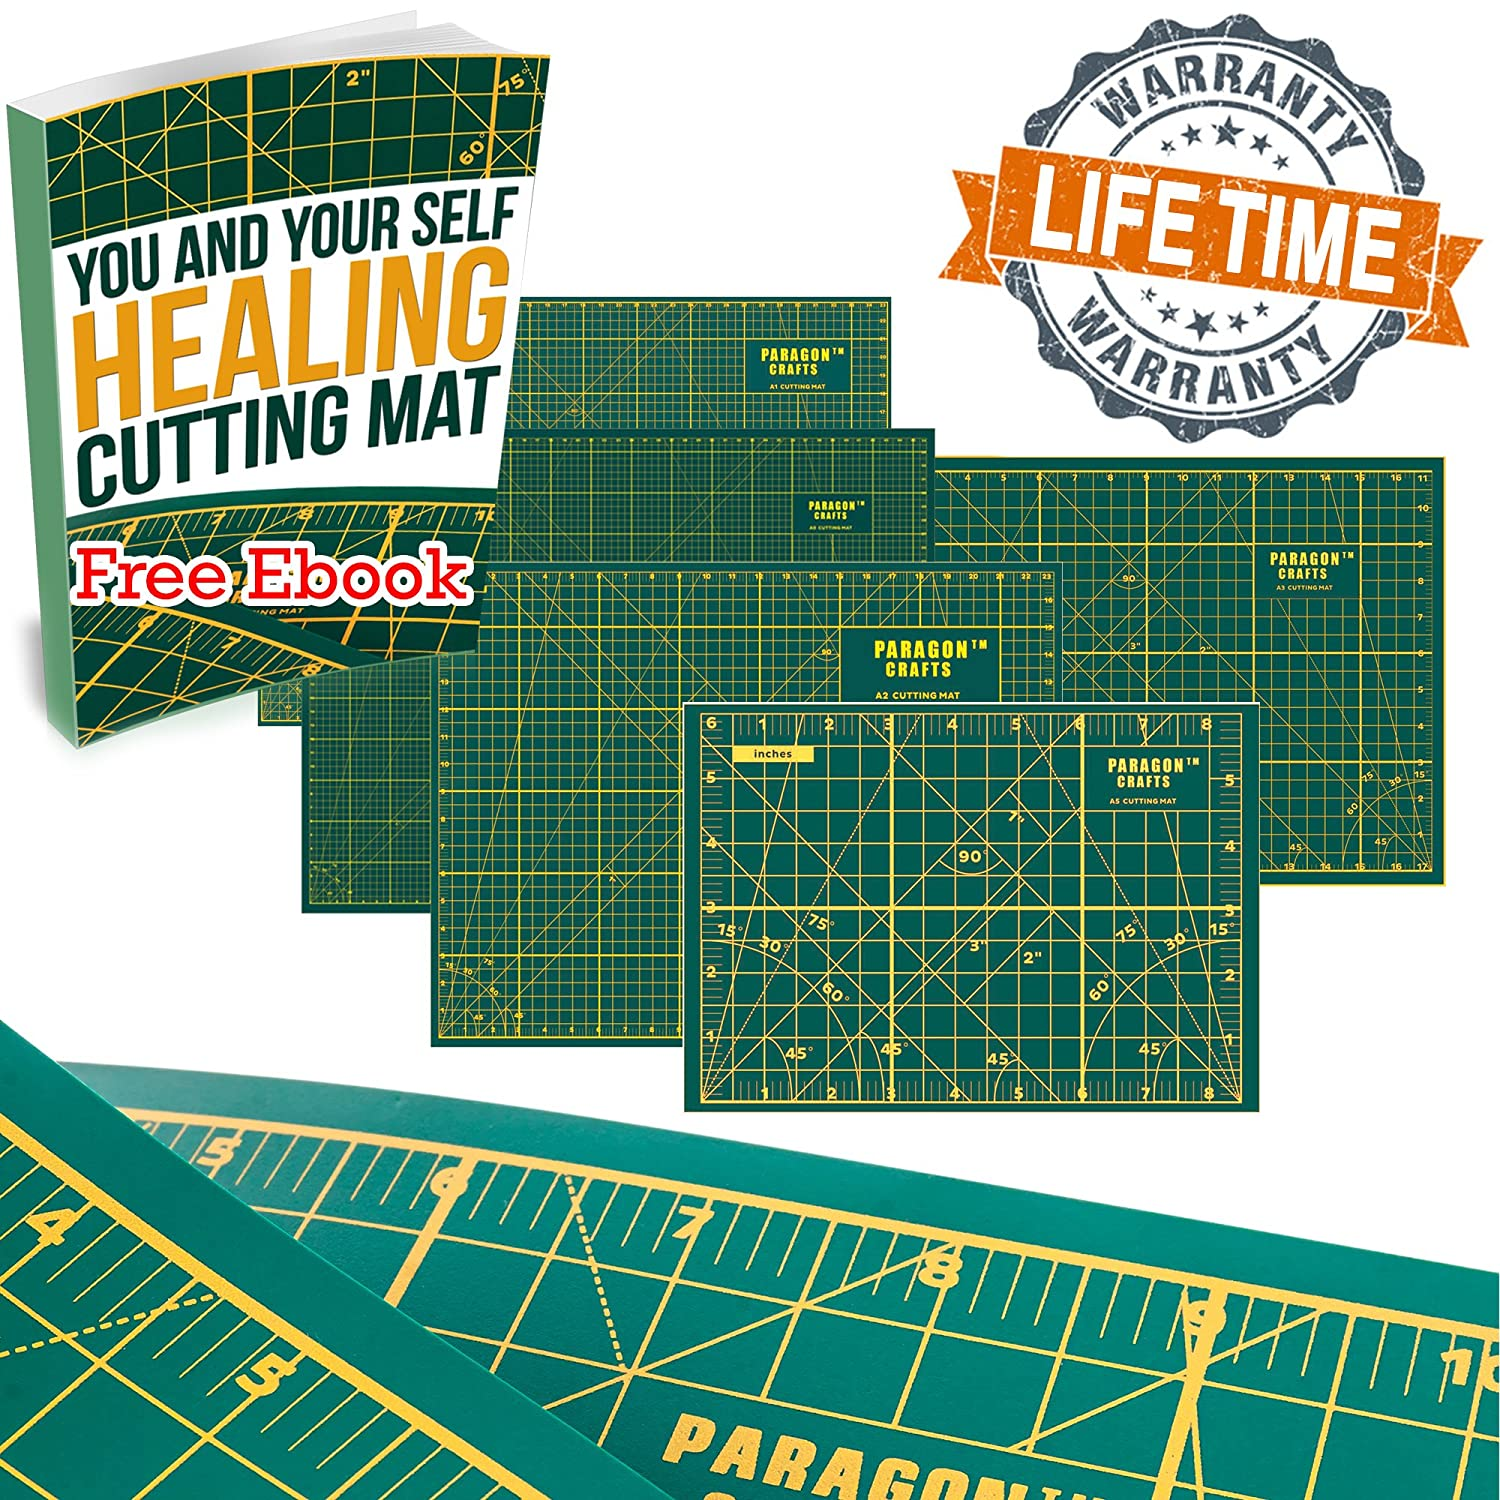 Amazon.com: Heavy Duty Double Sided Self Healing Cutting Mat For Sewing,  Quilting U0026 All DIY Crafts   Ergonomic U0026 Robust Cutting Board For Wood,  Paper, ...